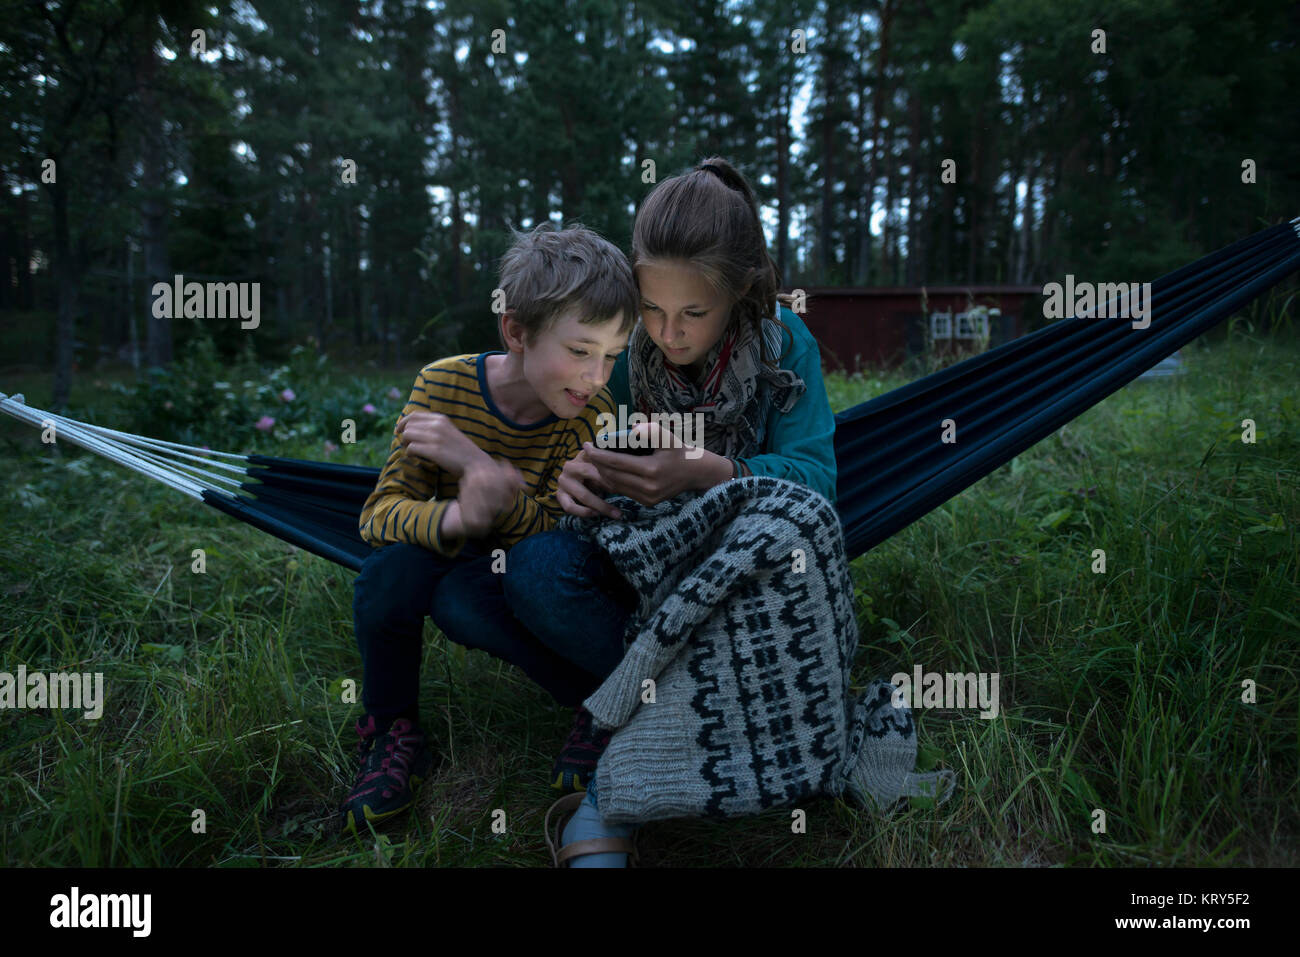 a boy and a girl in a hammock looking at a cell phone - Stock Image